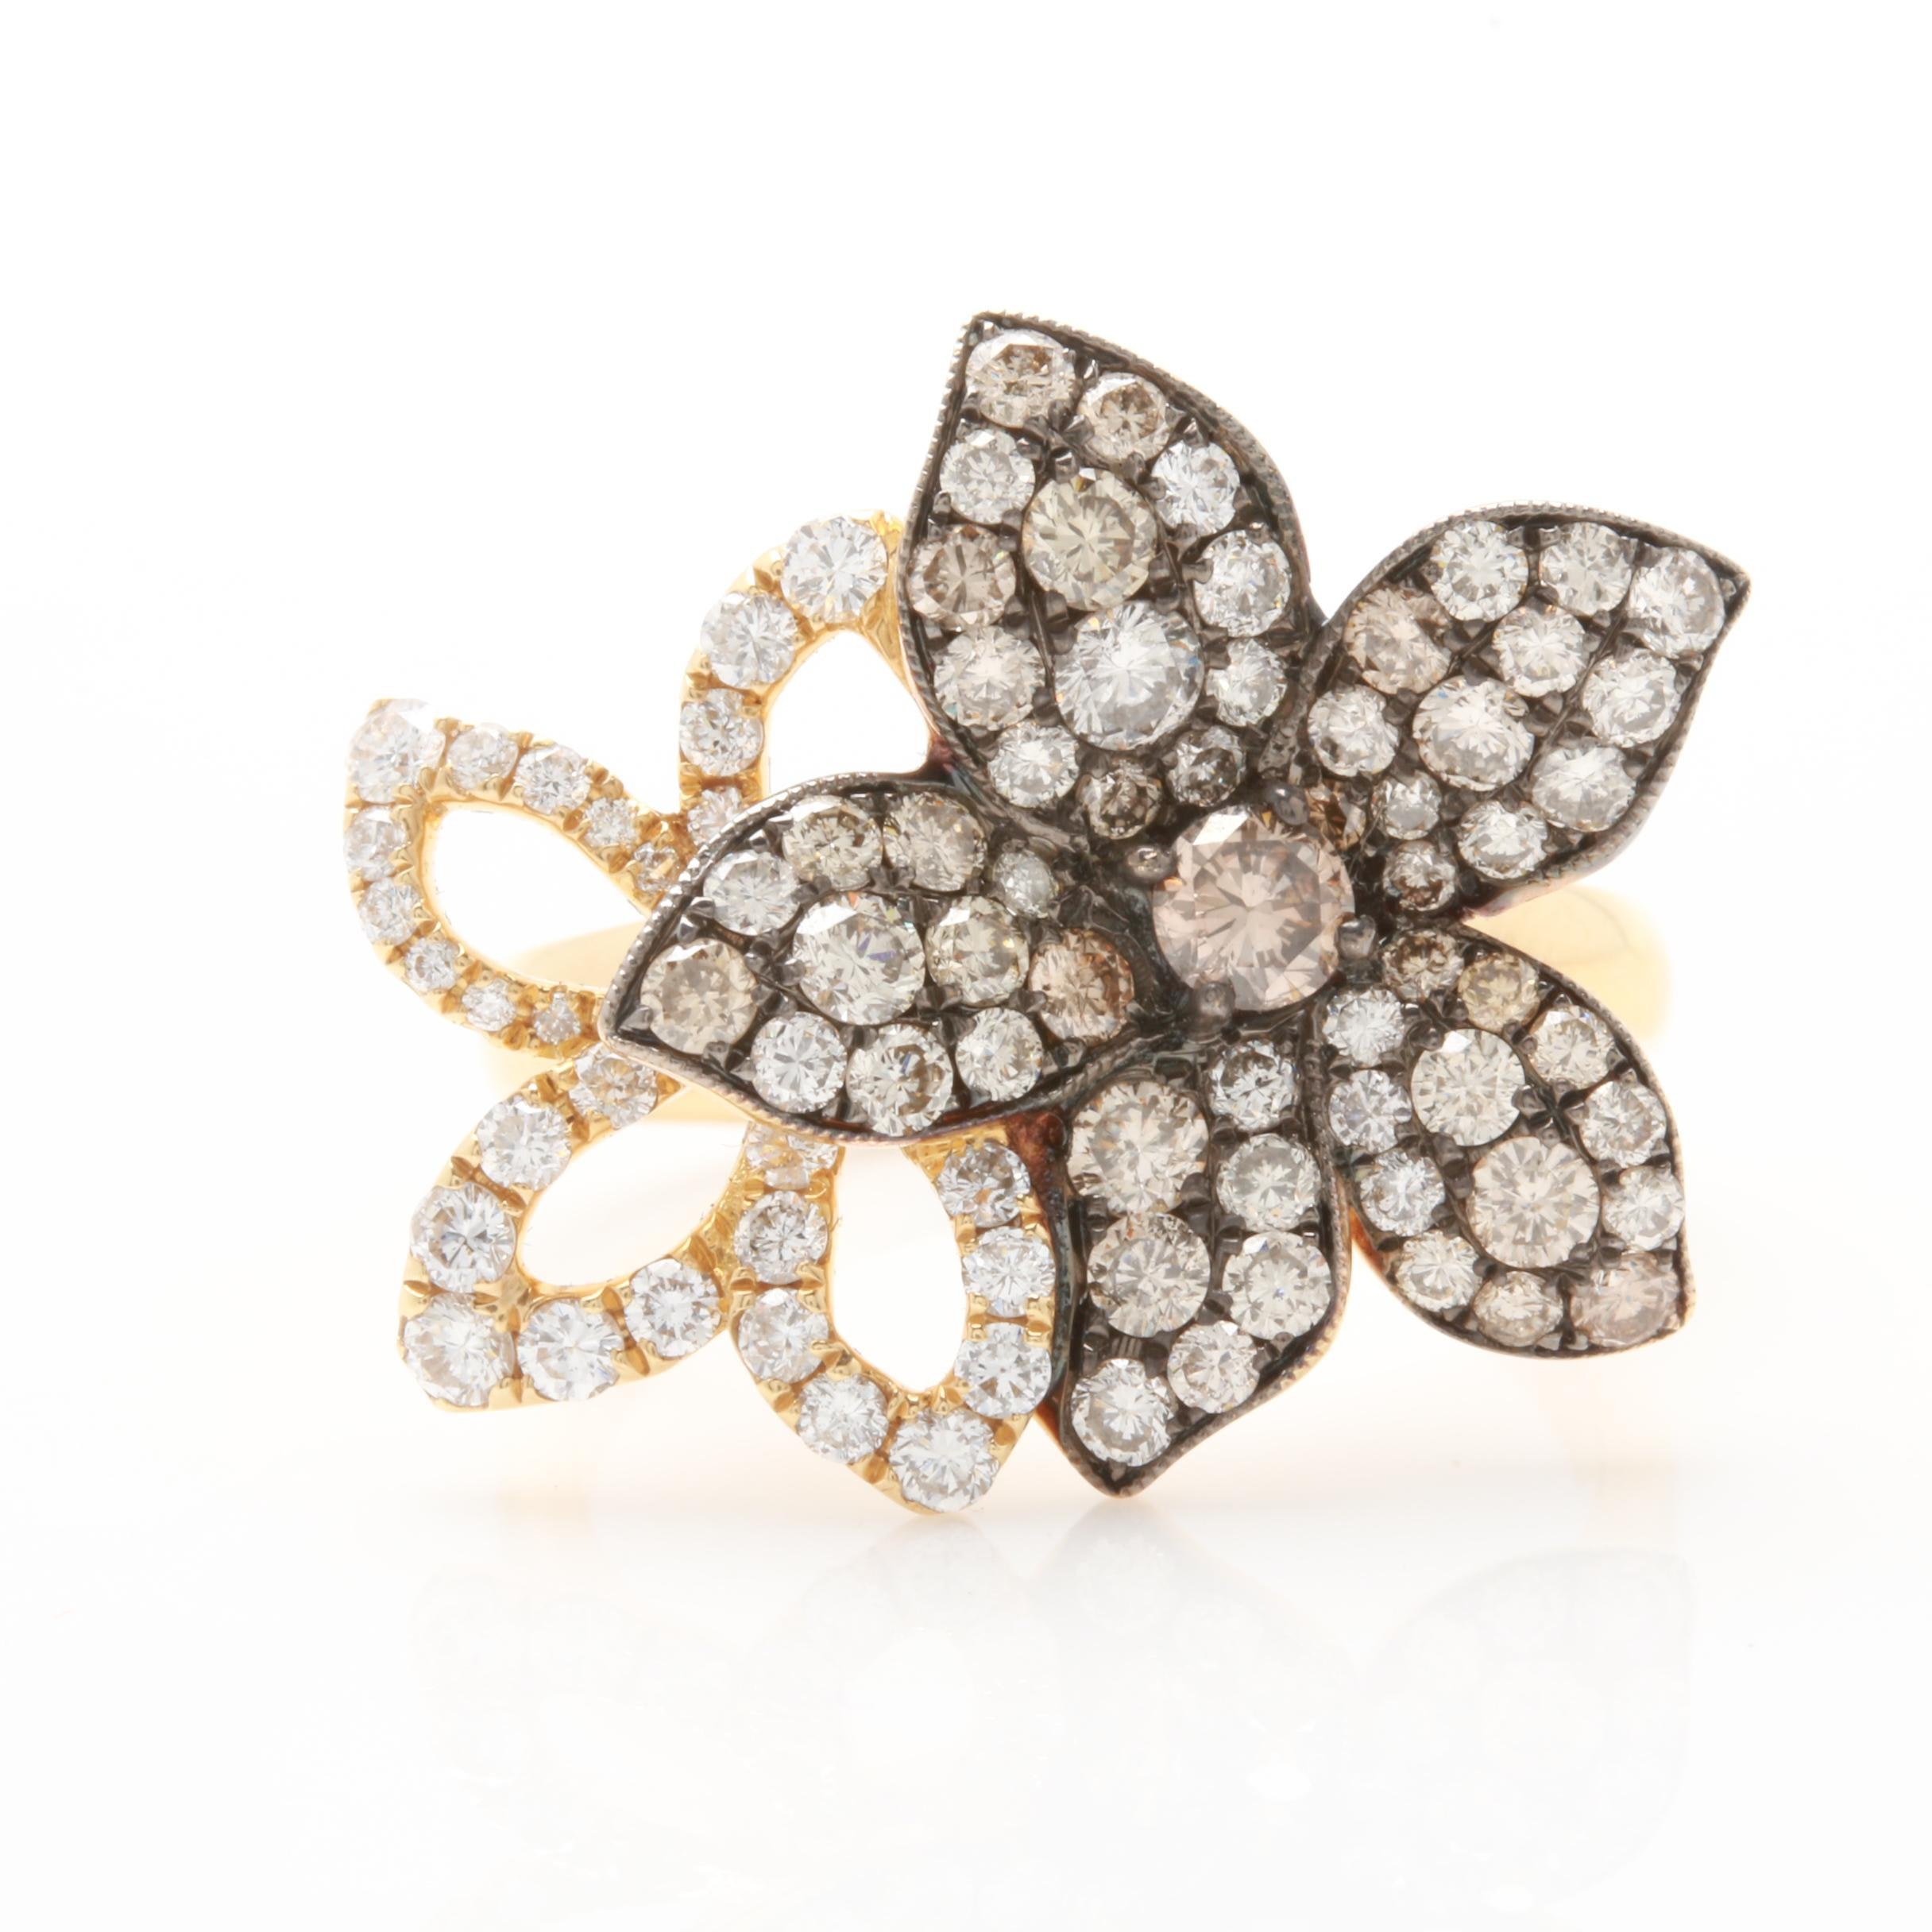 Apex 18K Yellow Gold 1.85 CTW Diamond Floral Ring with Brown Diamonds